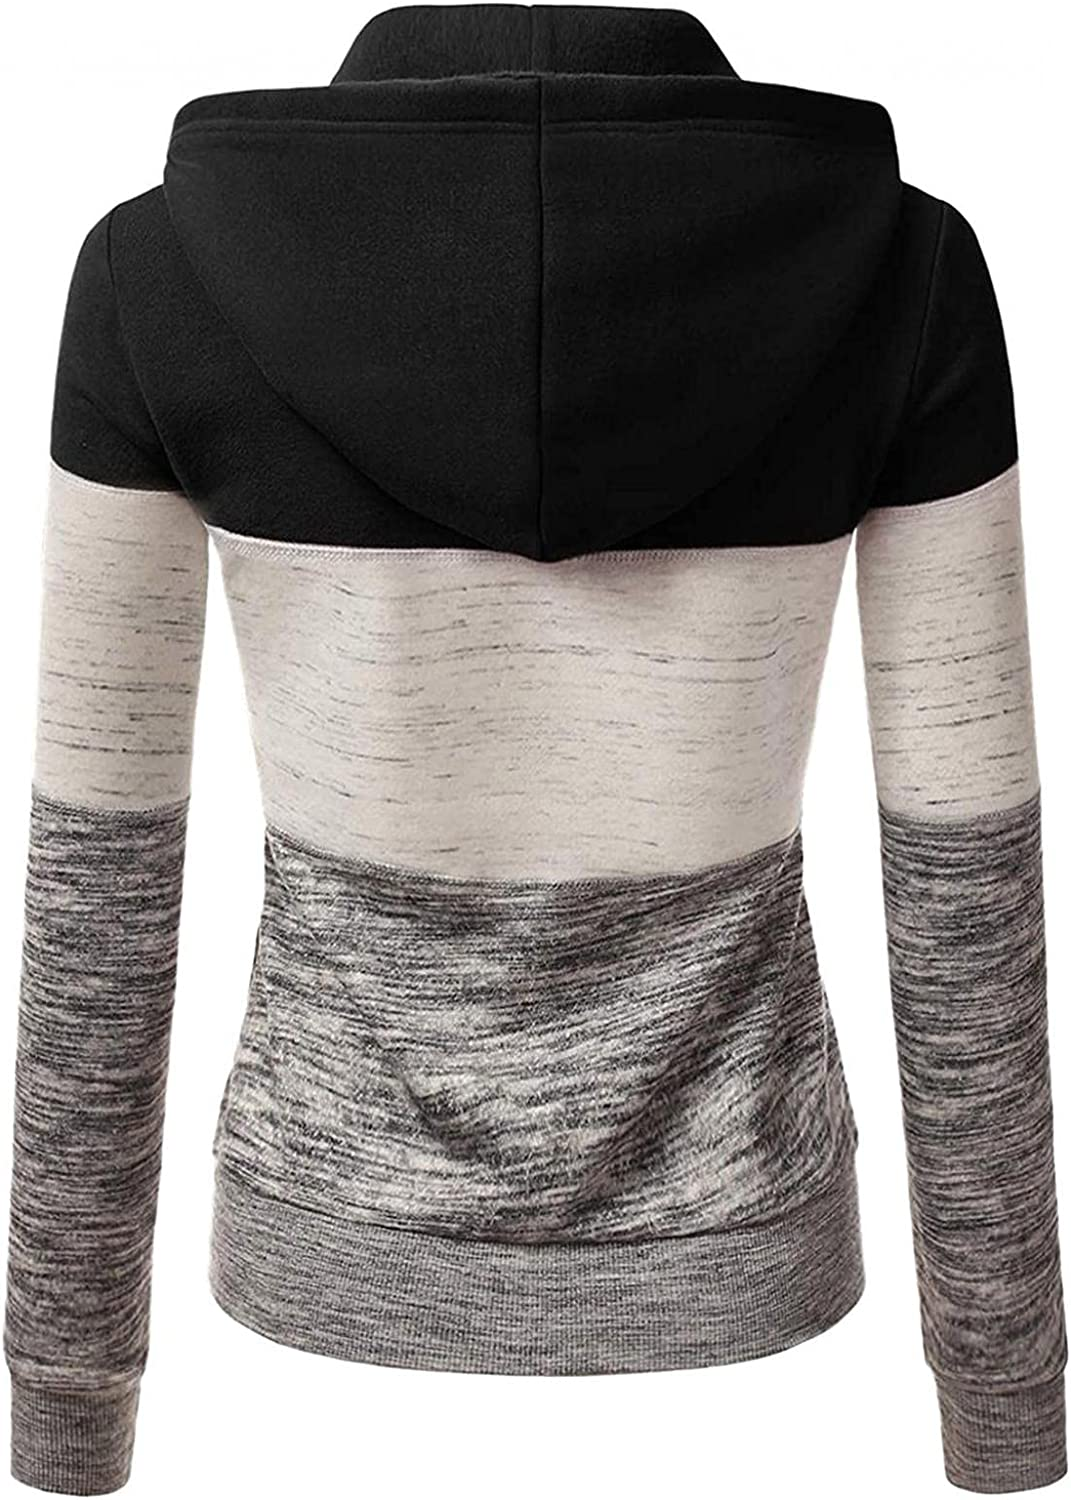 Fudule Zip Up Hoodies for Women, 2021 Fashion Lightweight Full-Zip Outerwear with Drawstring Coat Casual Slim Fit Jacket